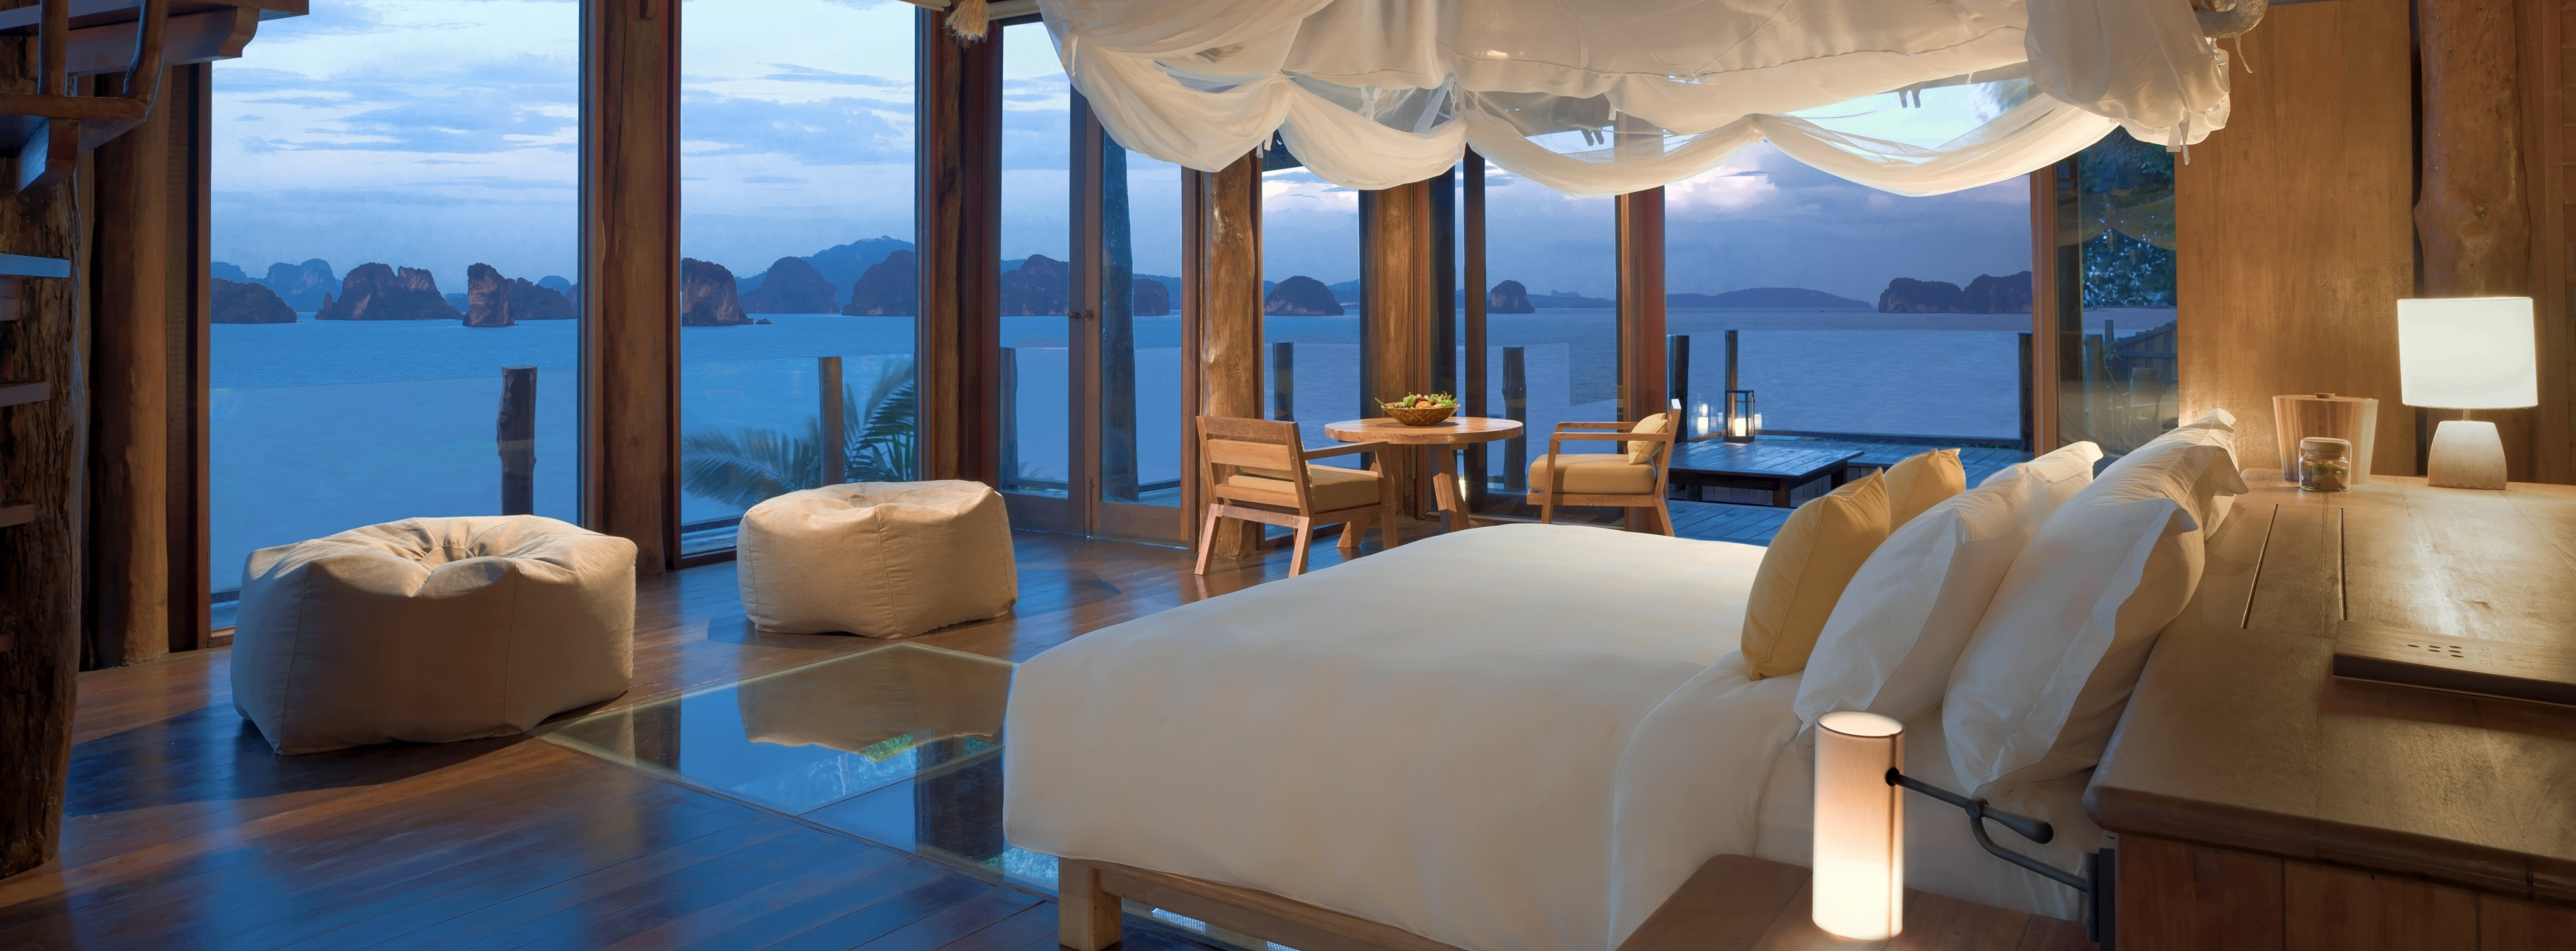 luxury-honeymoon-thailand